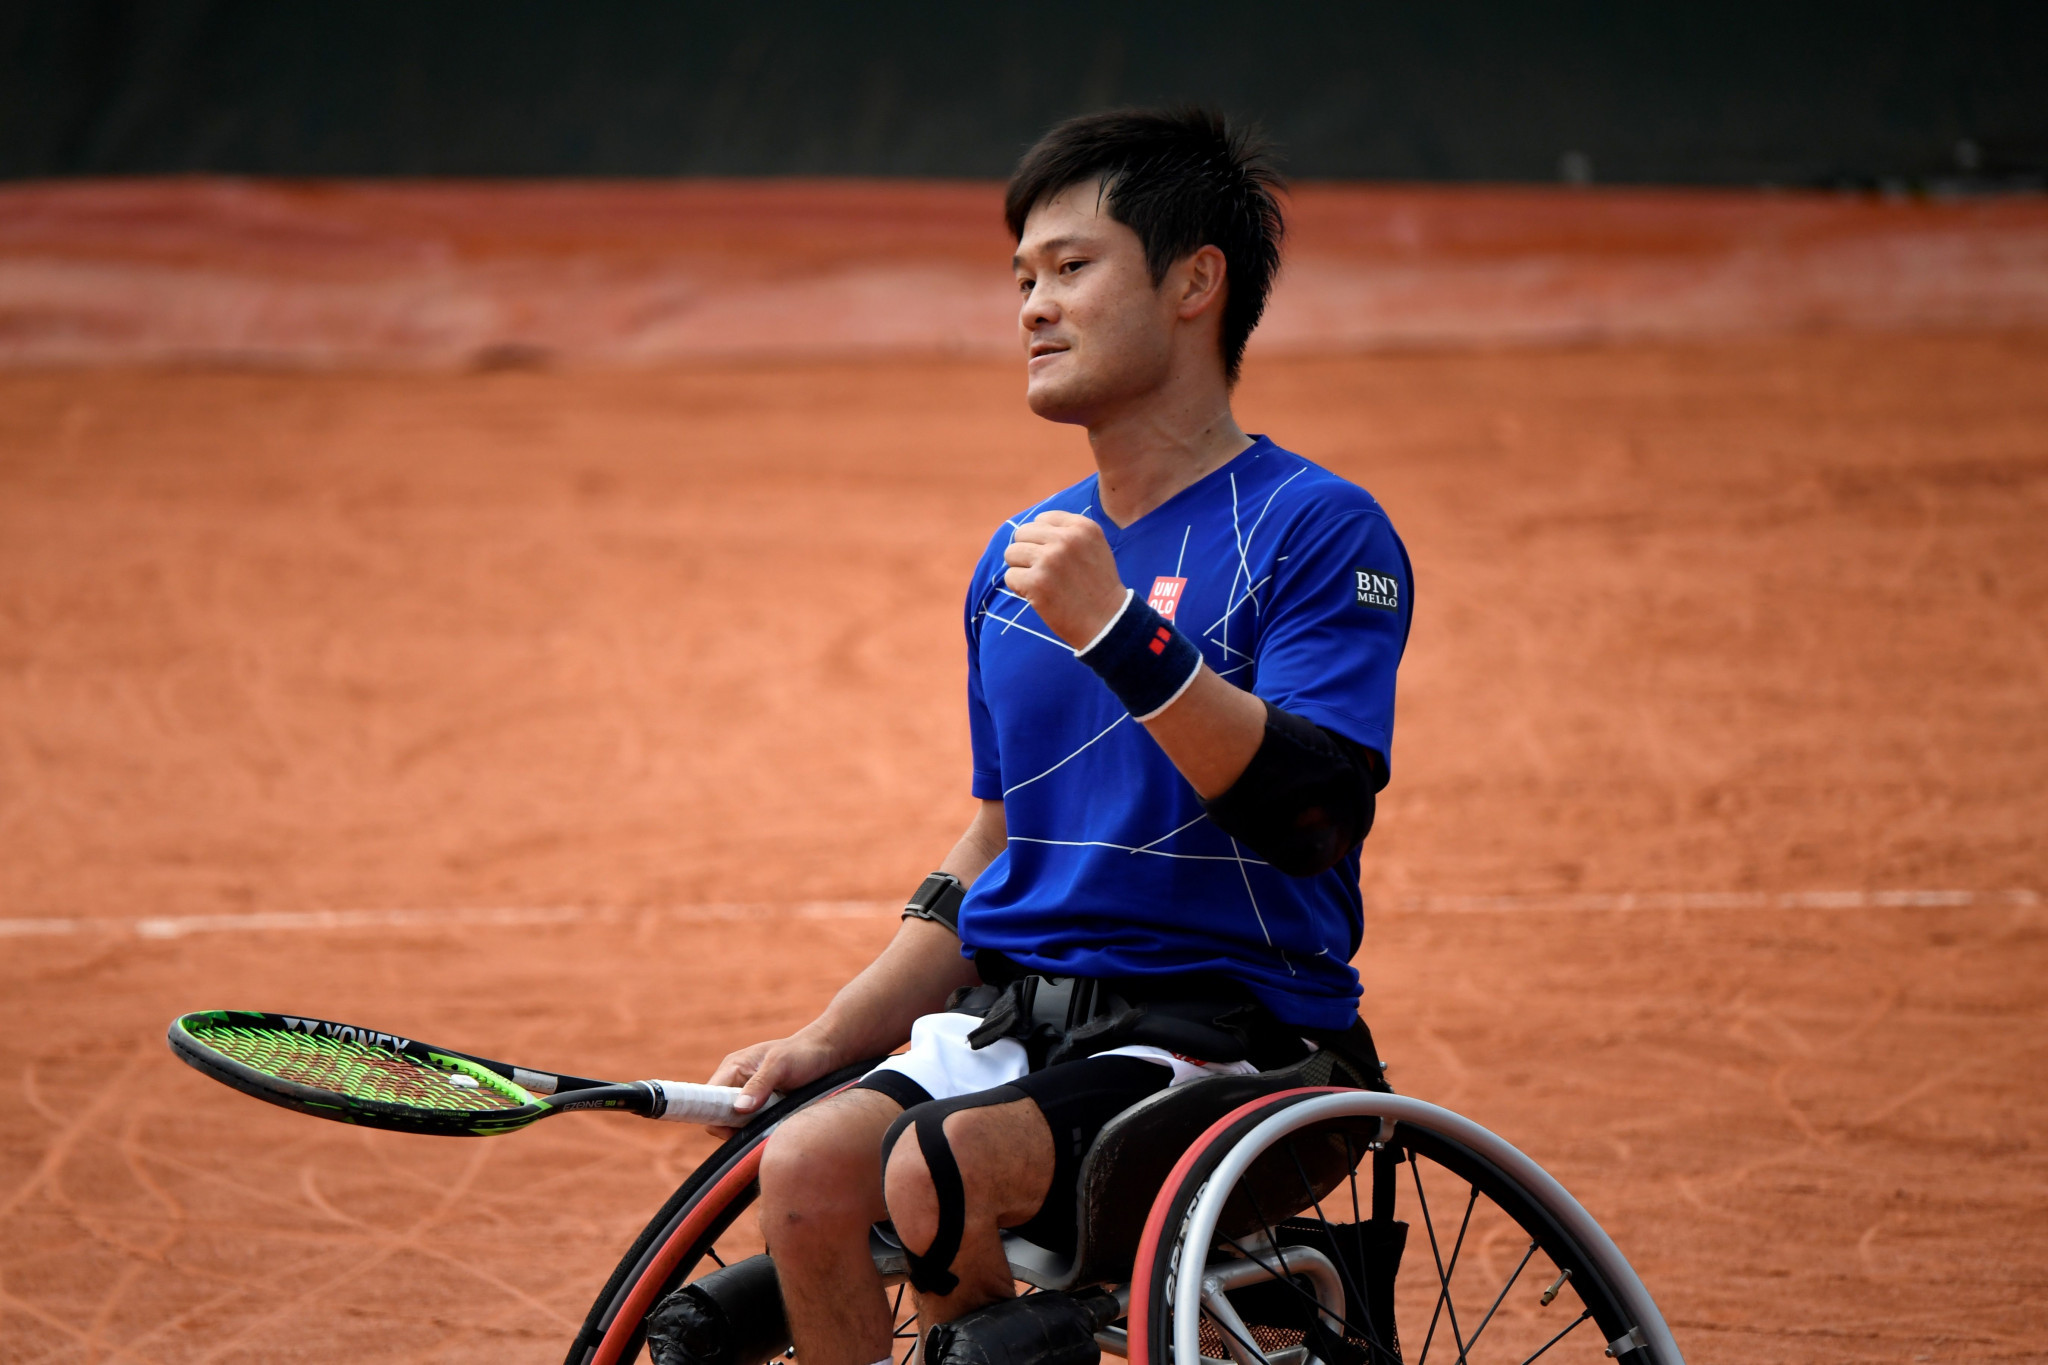 Japan's world number one Shingo Kunieda lost his opening men's wheelchair singles match at Wmbledon ©Getty Images